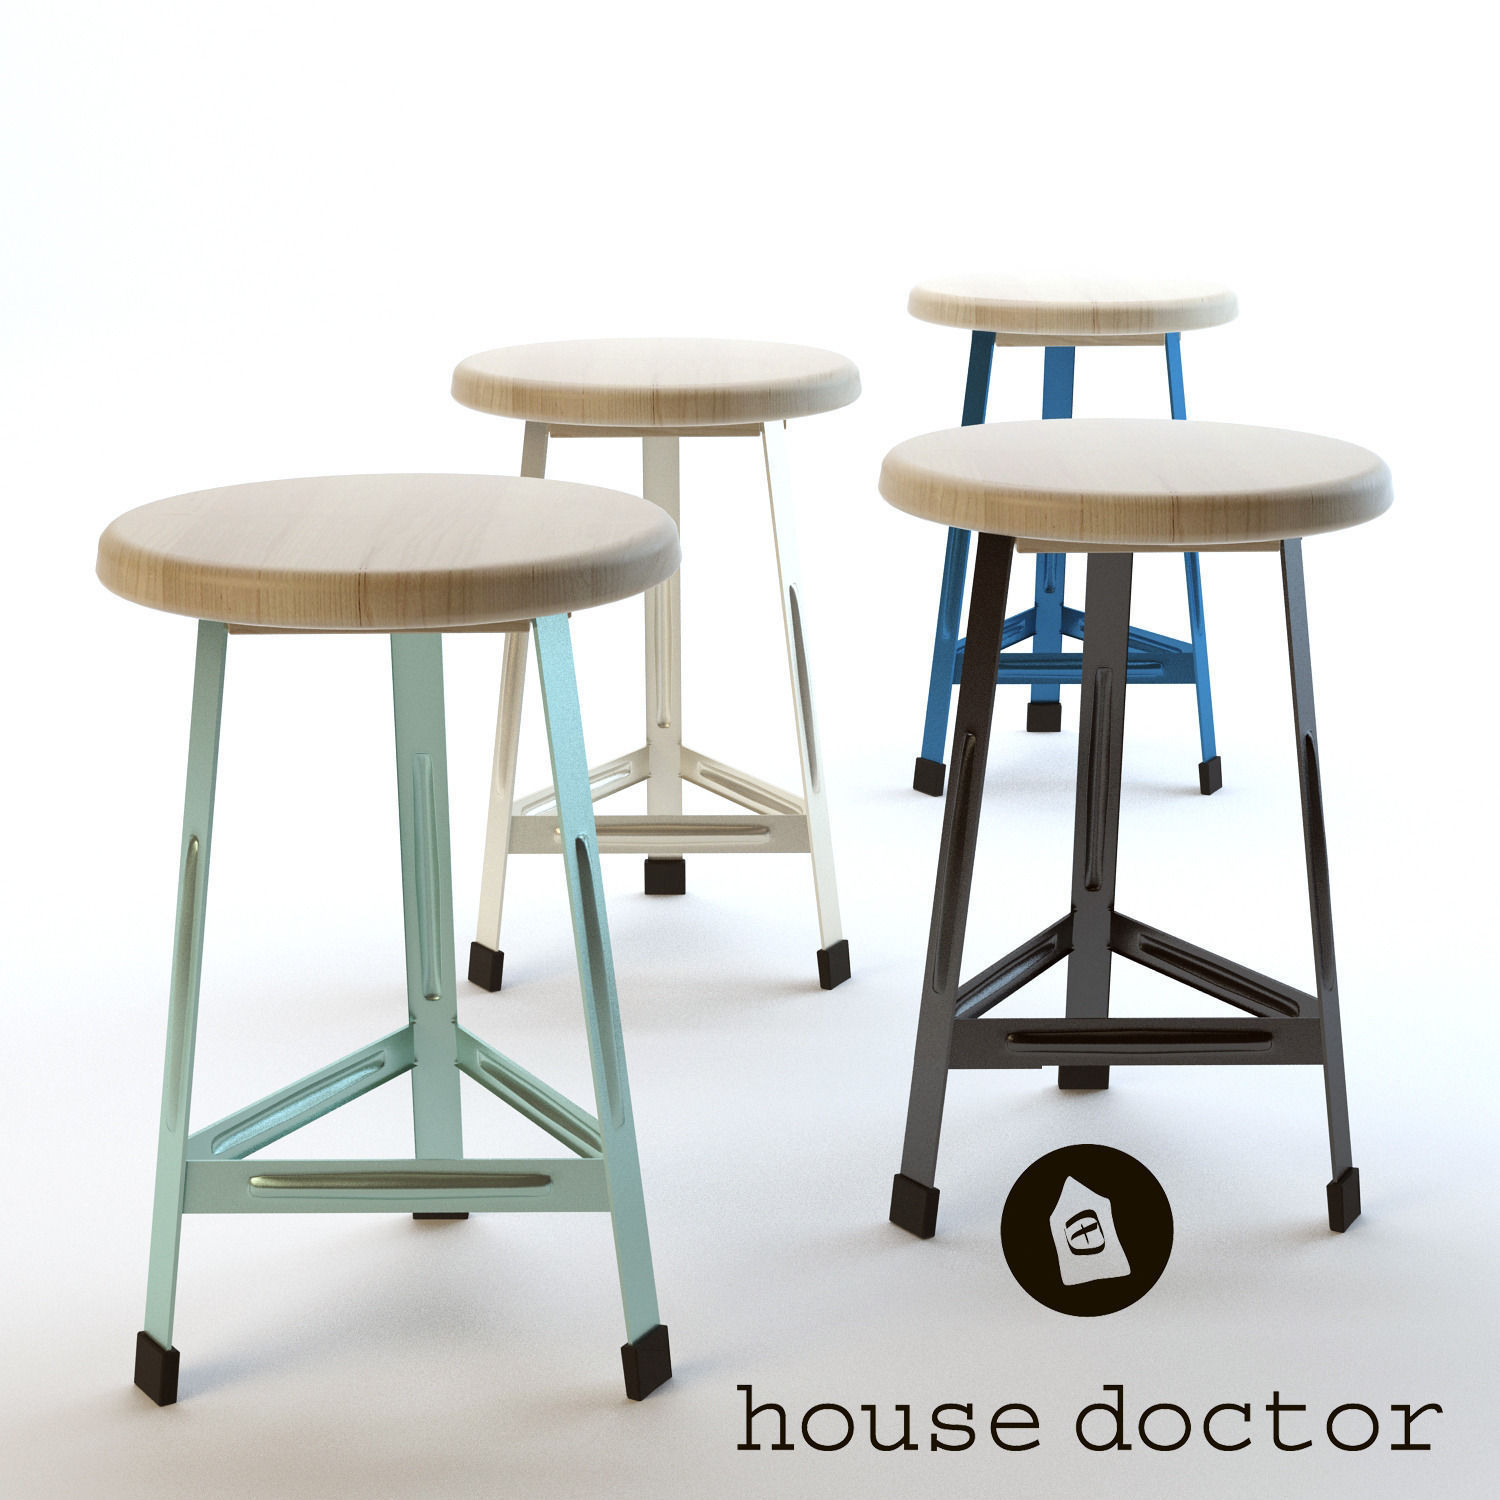 Perfect Chair House Doctor 3d Model Max Fbx 1 ...